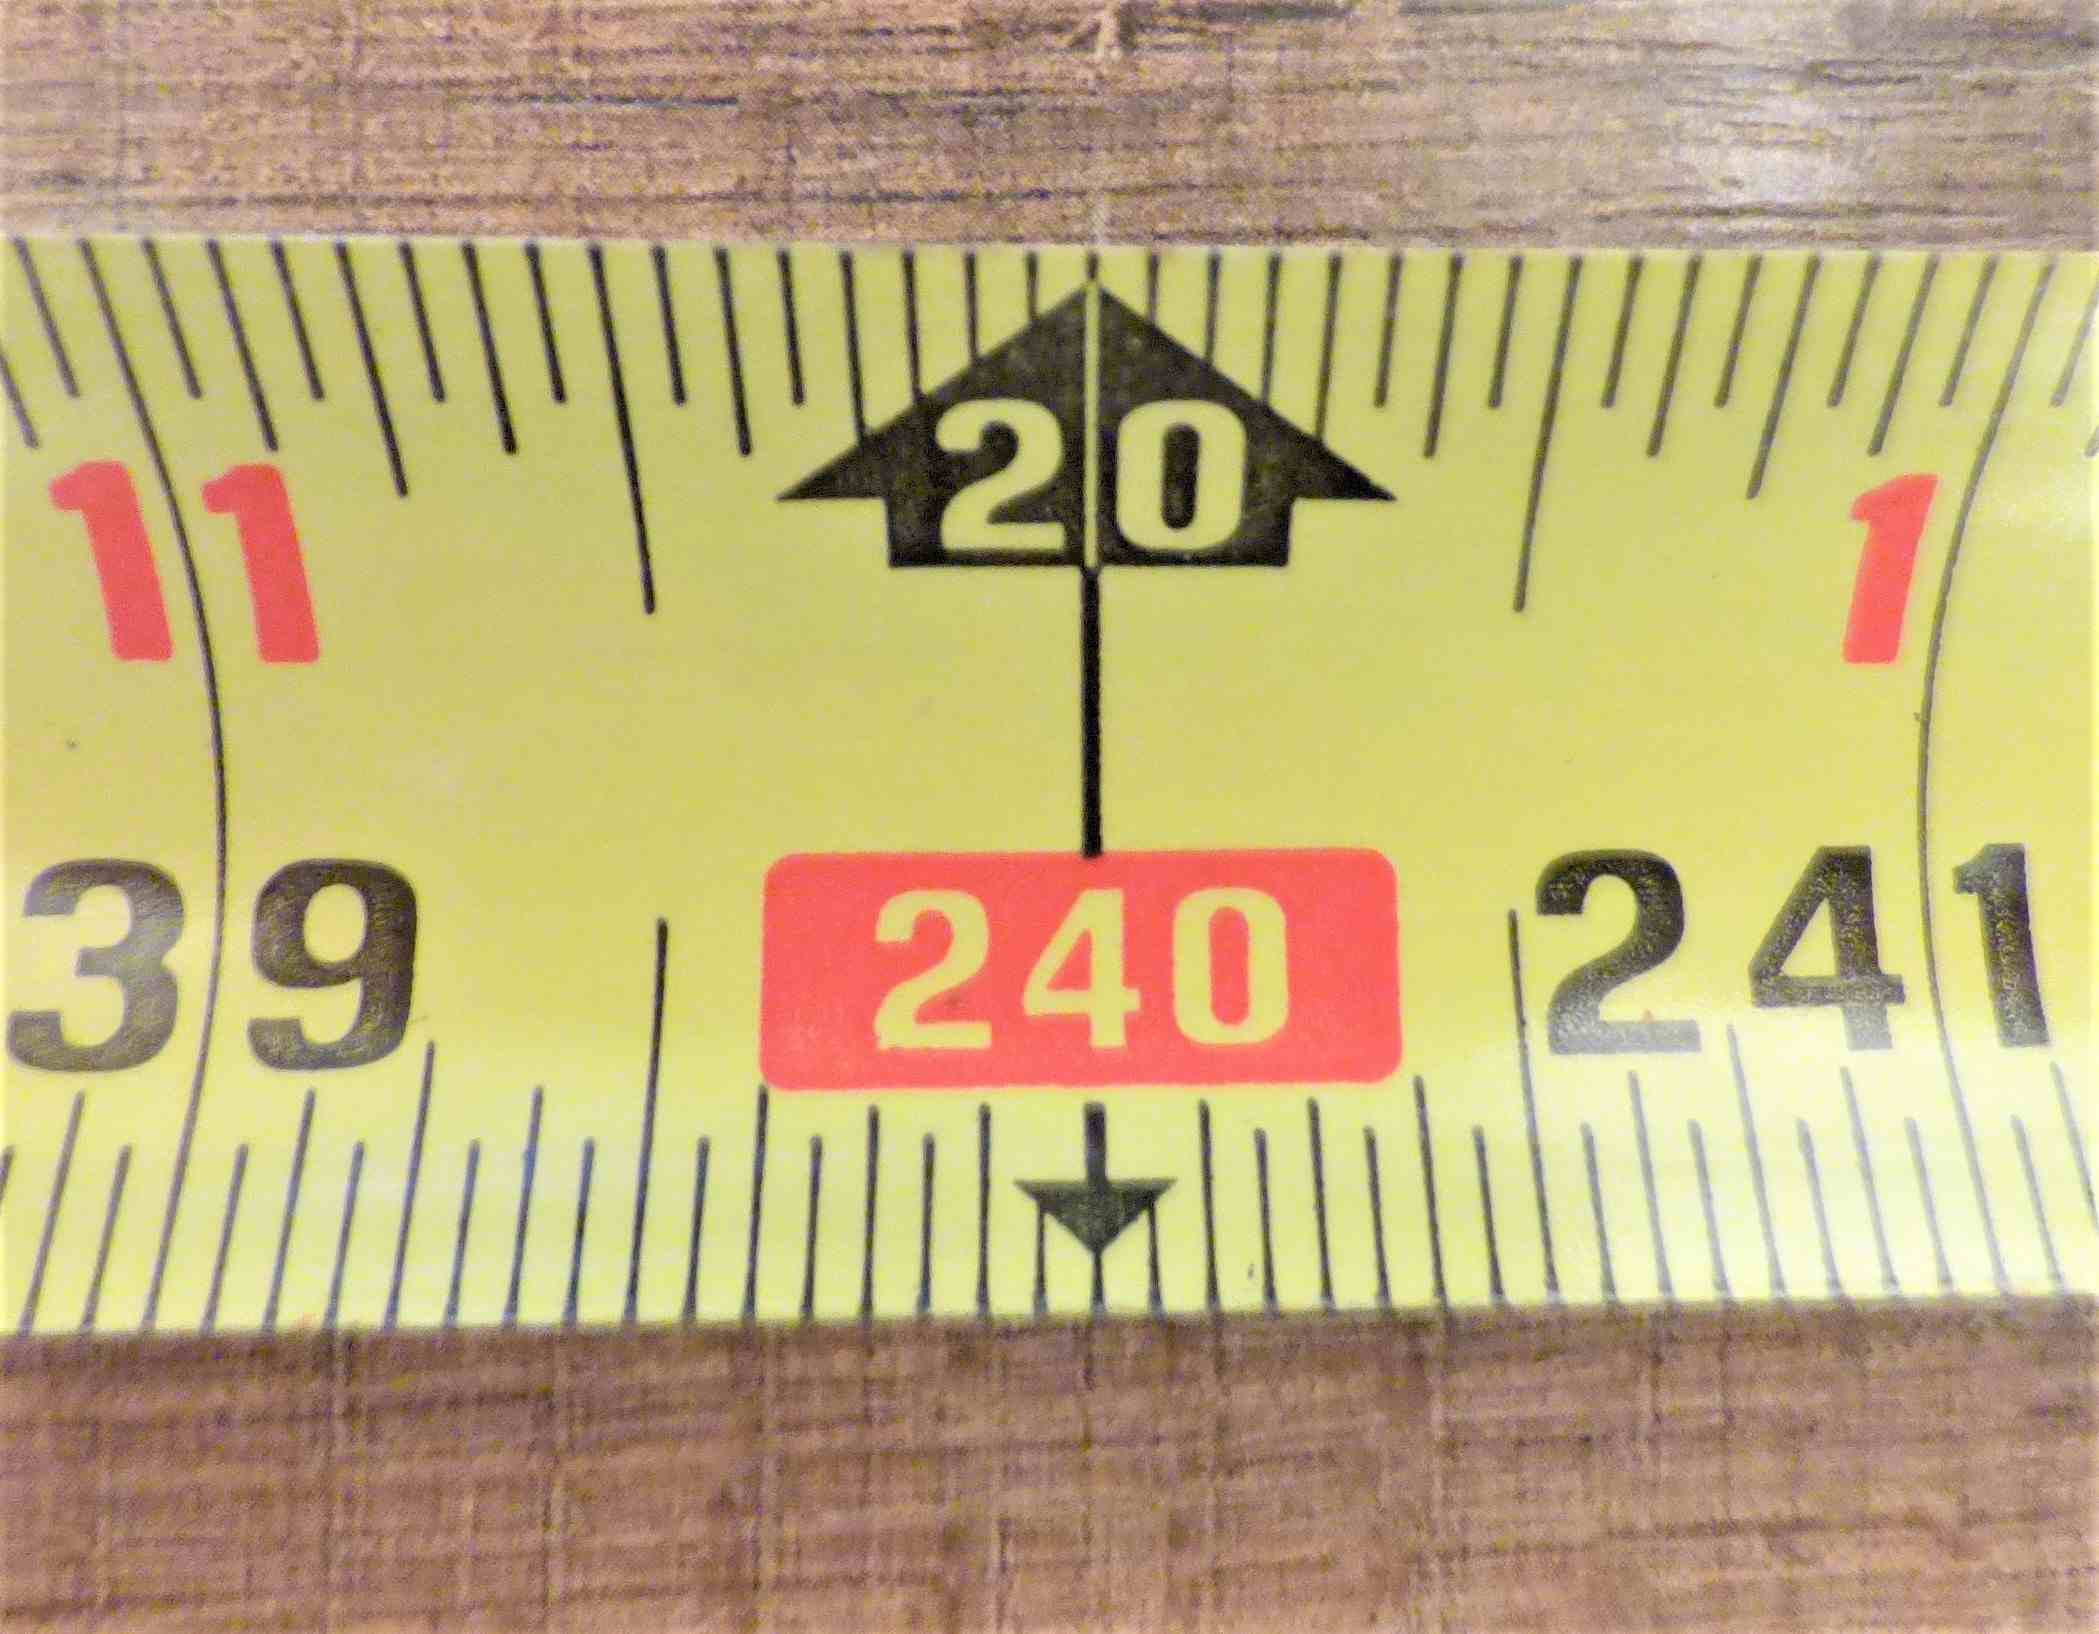 Tape Measure One Inch Mark